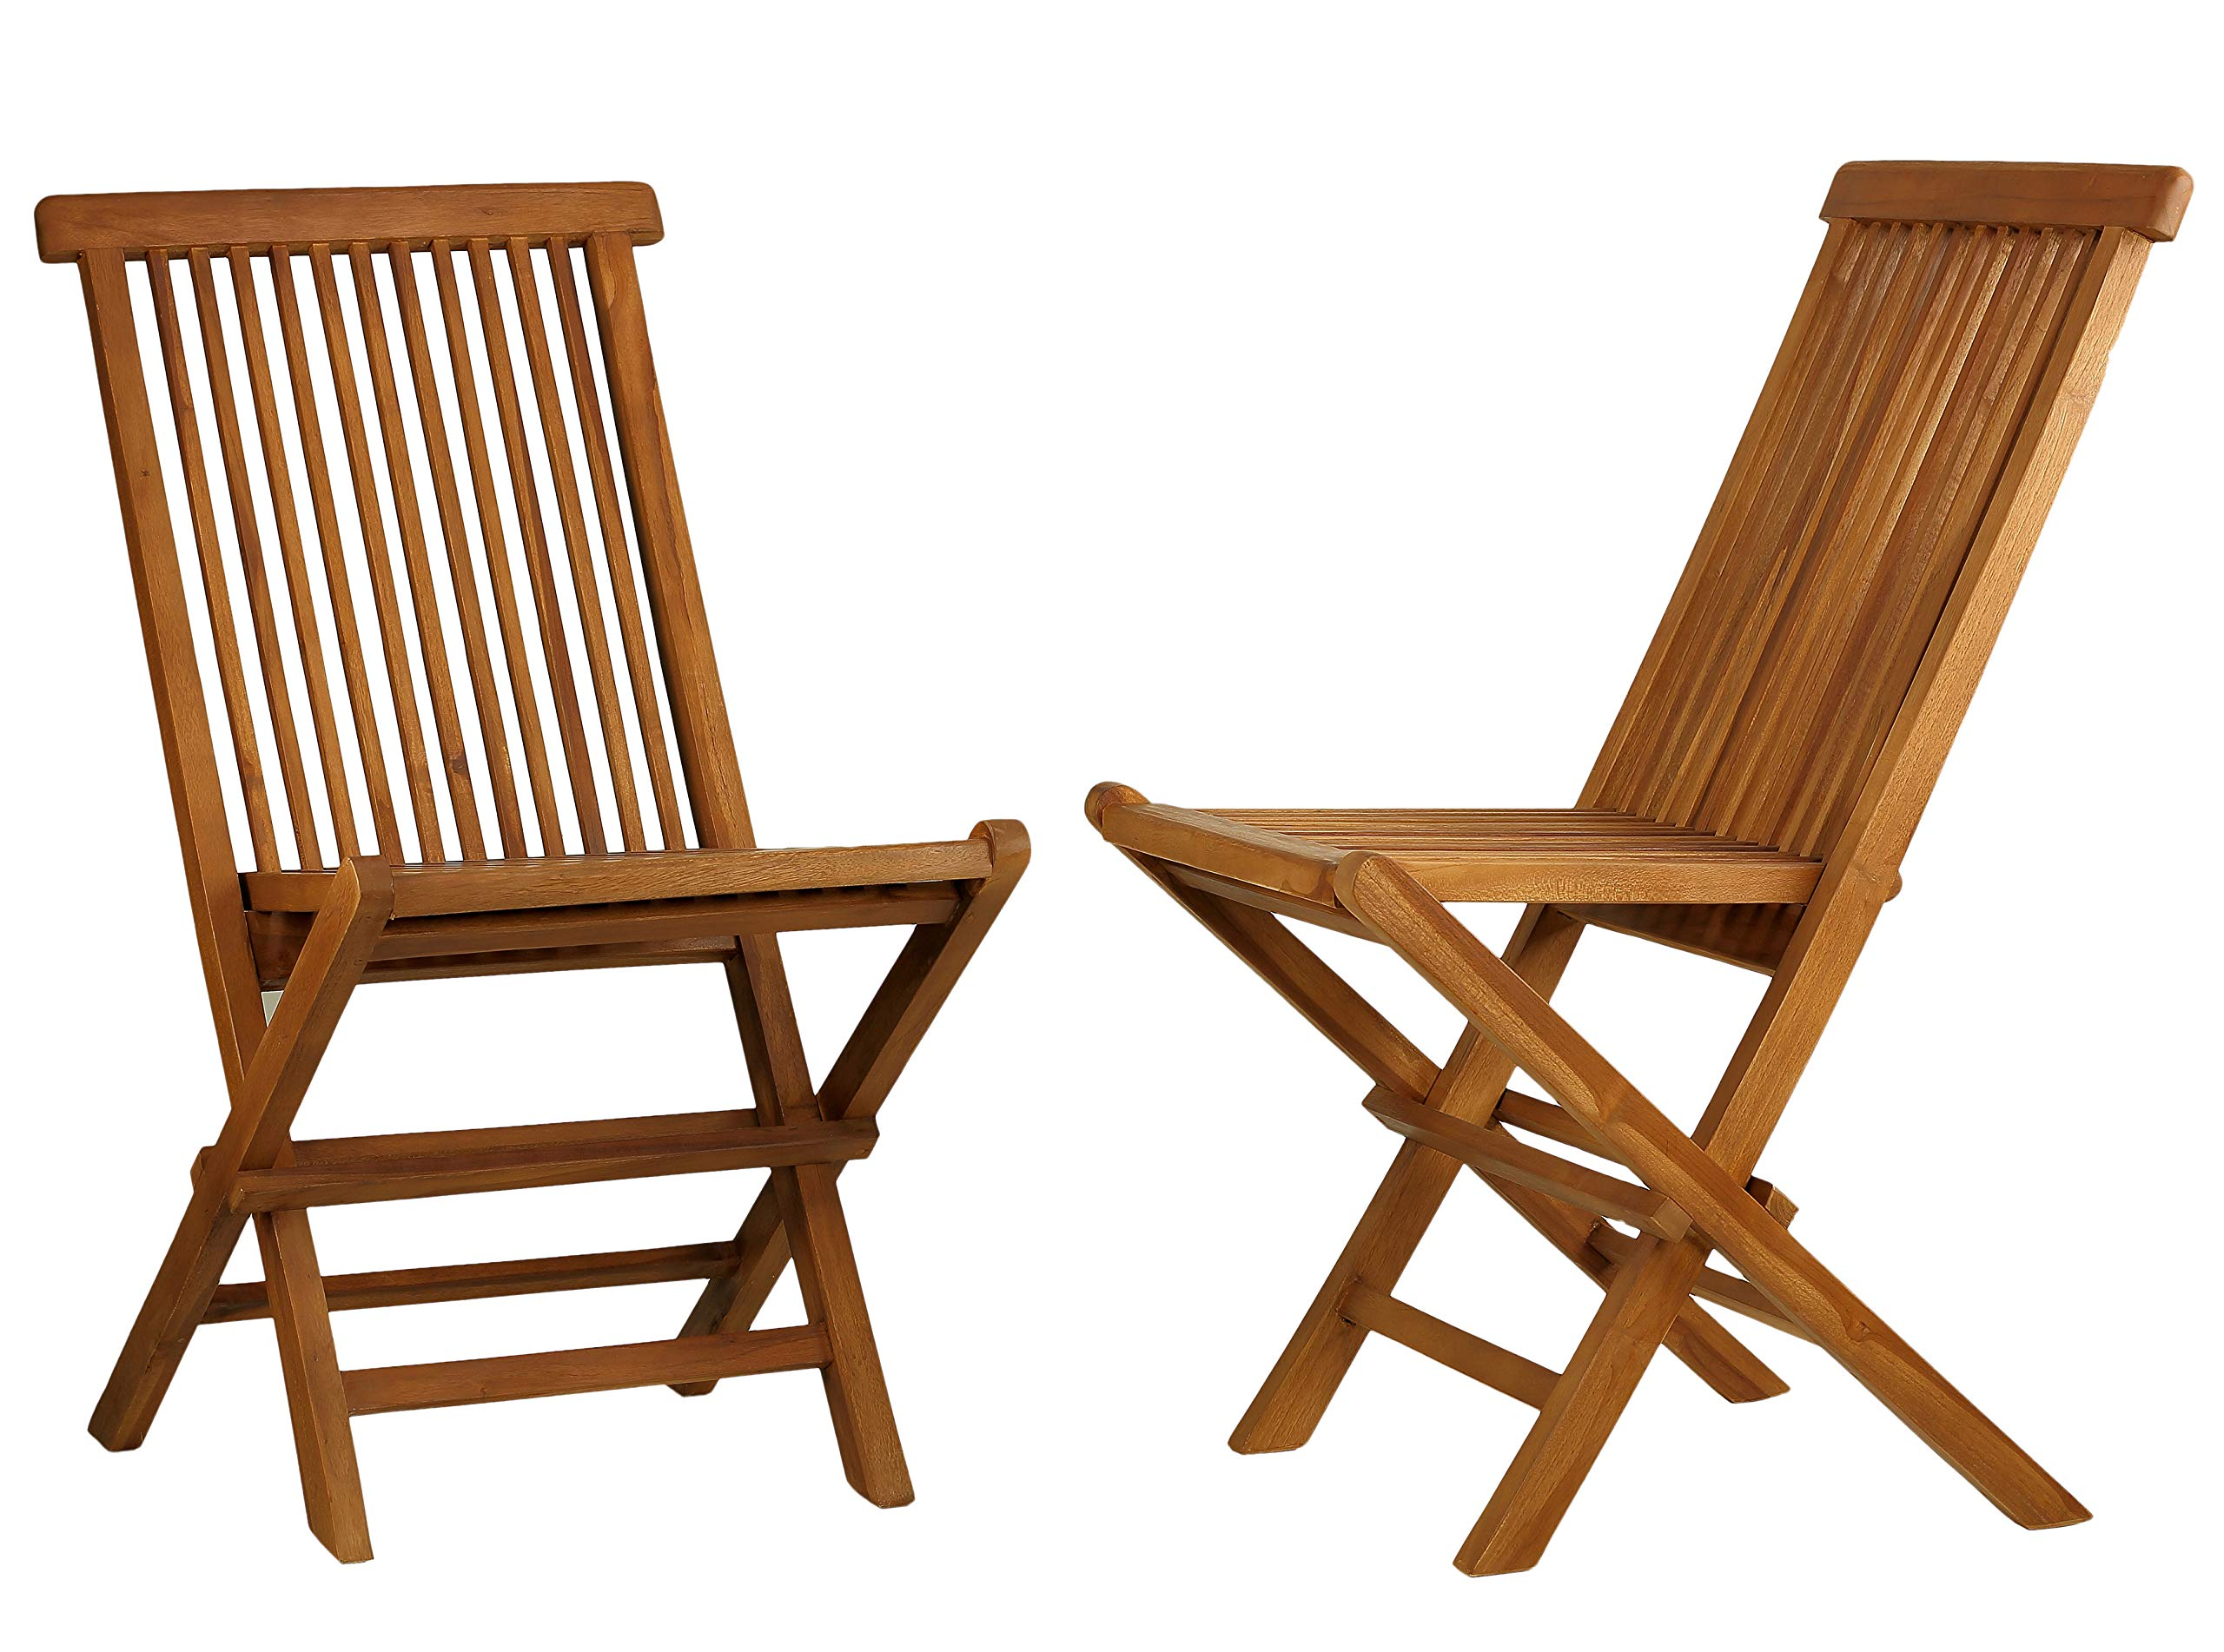 Amazon com bare decor bare dc1021 vega outdoor folding chair set of 2 teak patio dining chairs garden outdoor